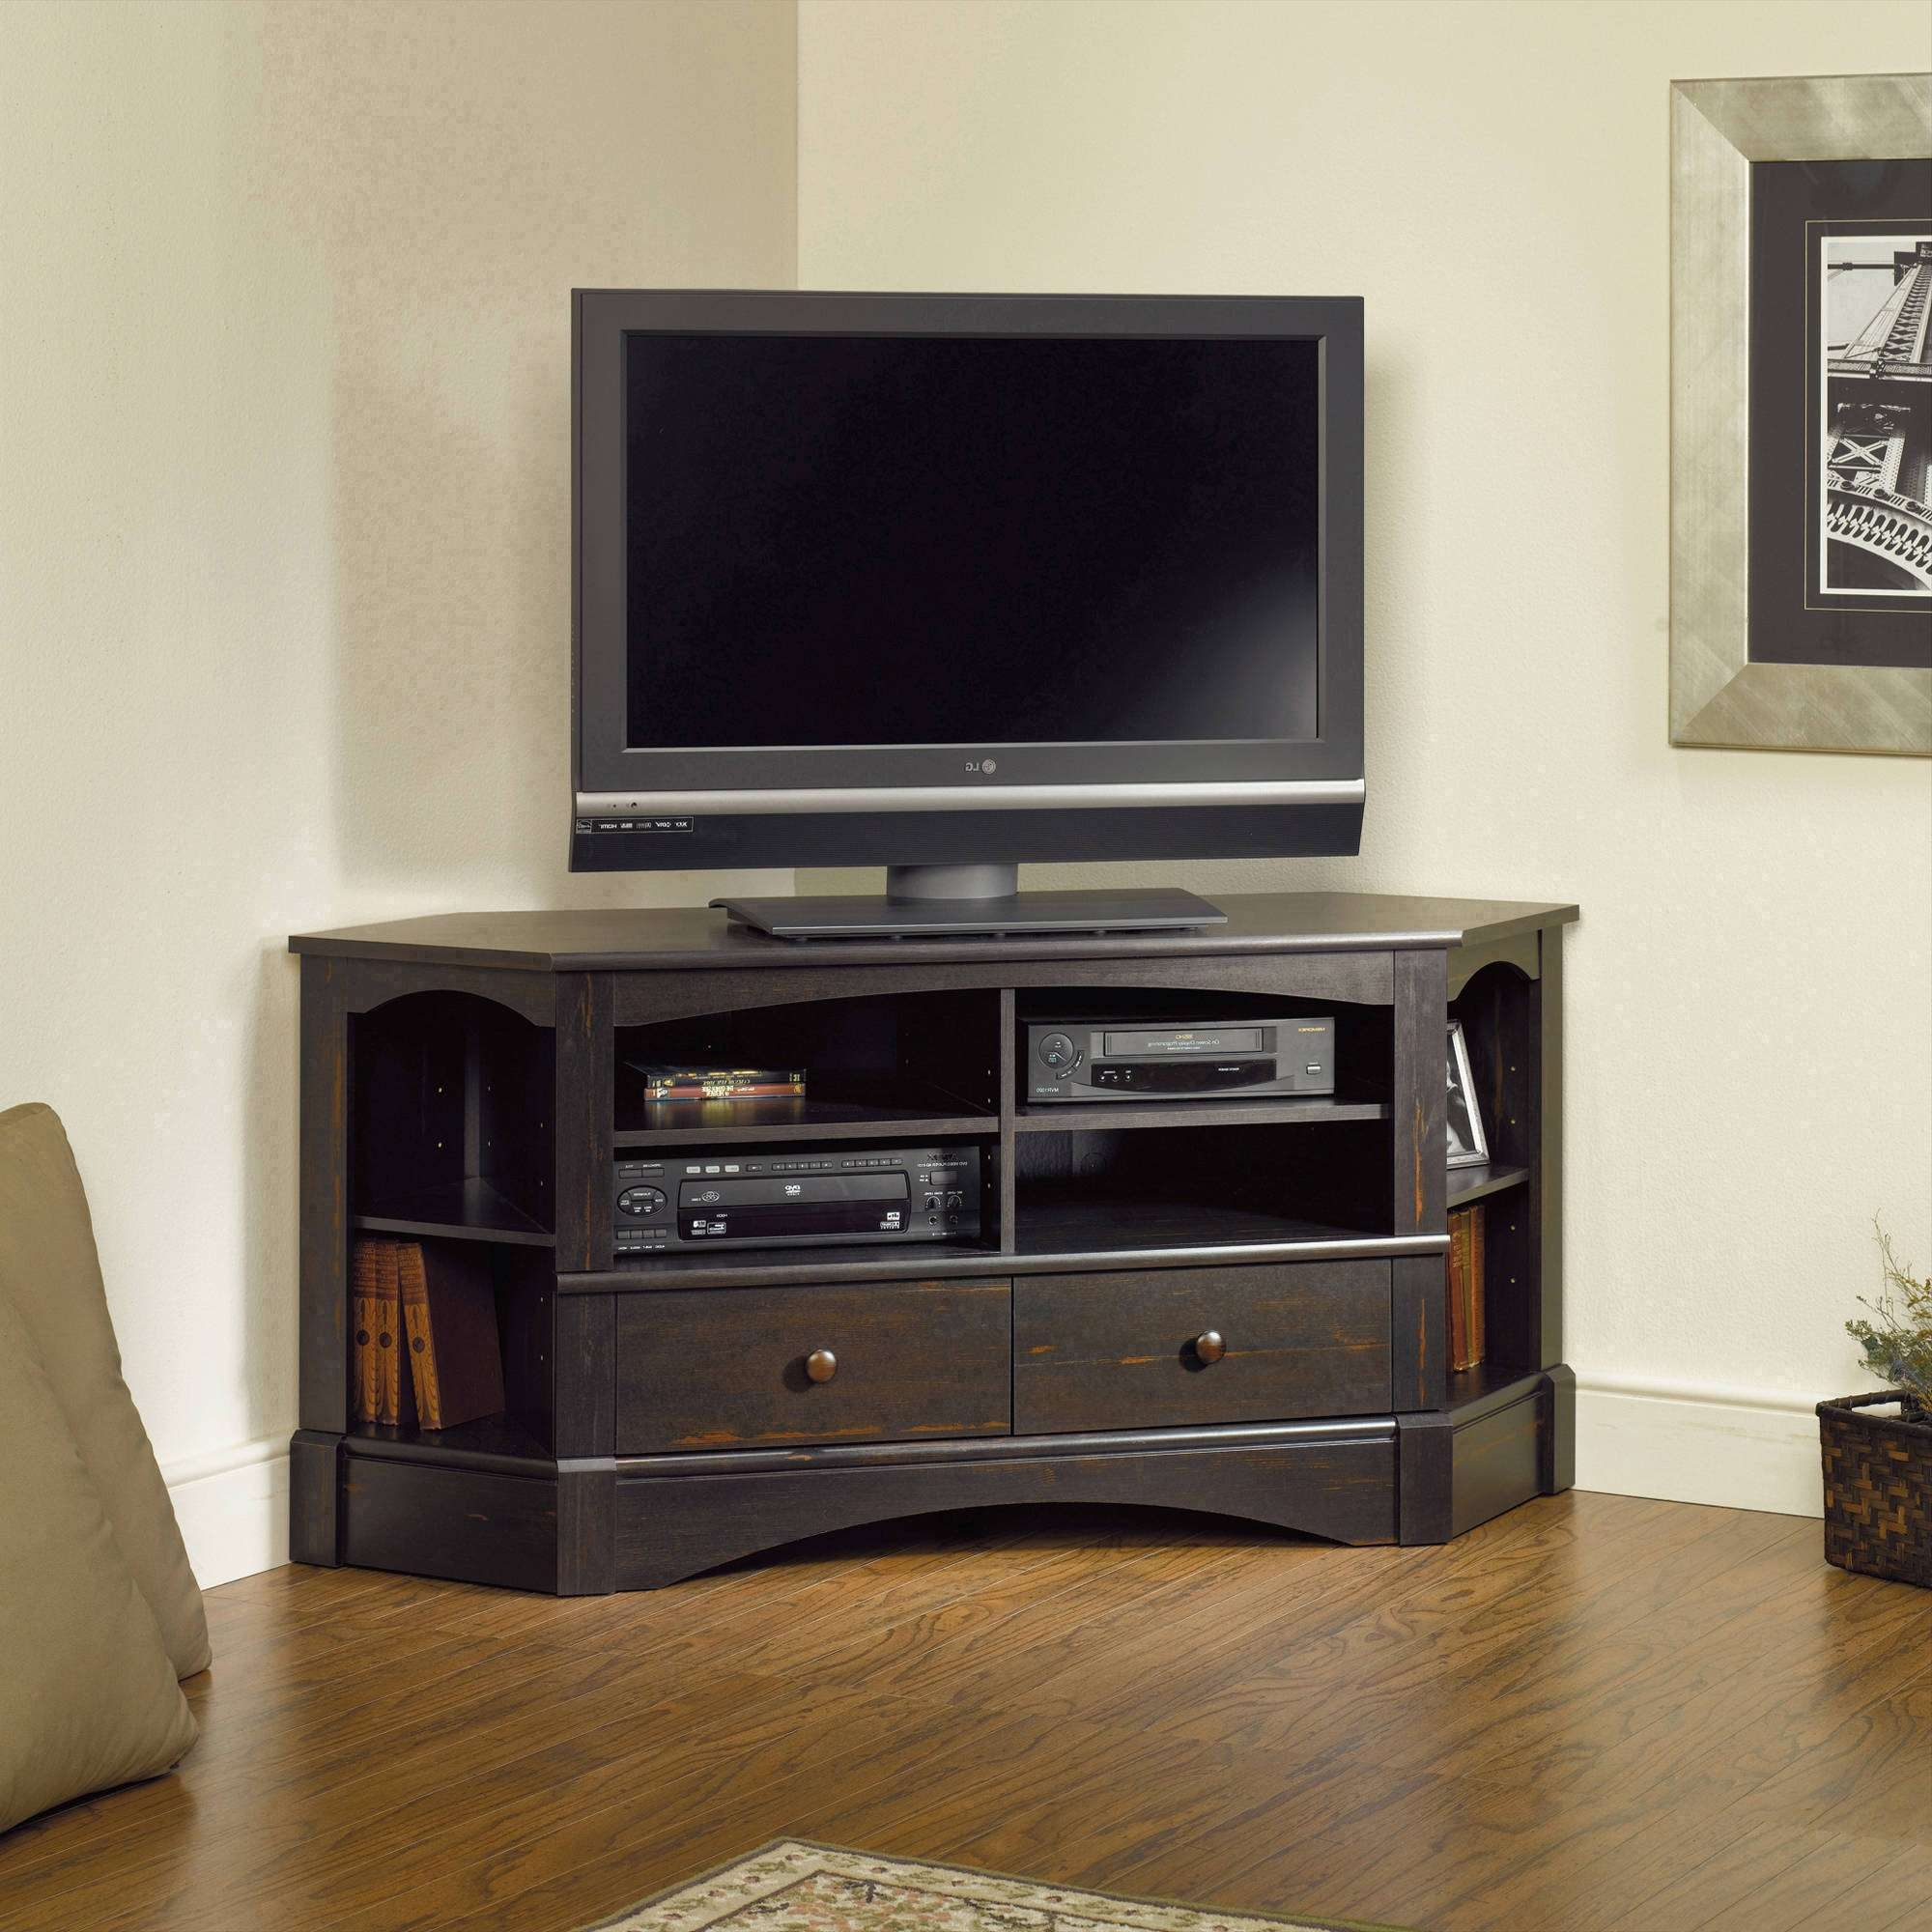 Tv Stand : 32 Unusual 55 Inch Corner Tv Stand With Mount Images With Regard To Corner Tv Stands For 60 Inch Flat Screens (View 8 of 15)